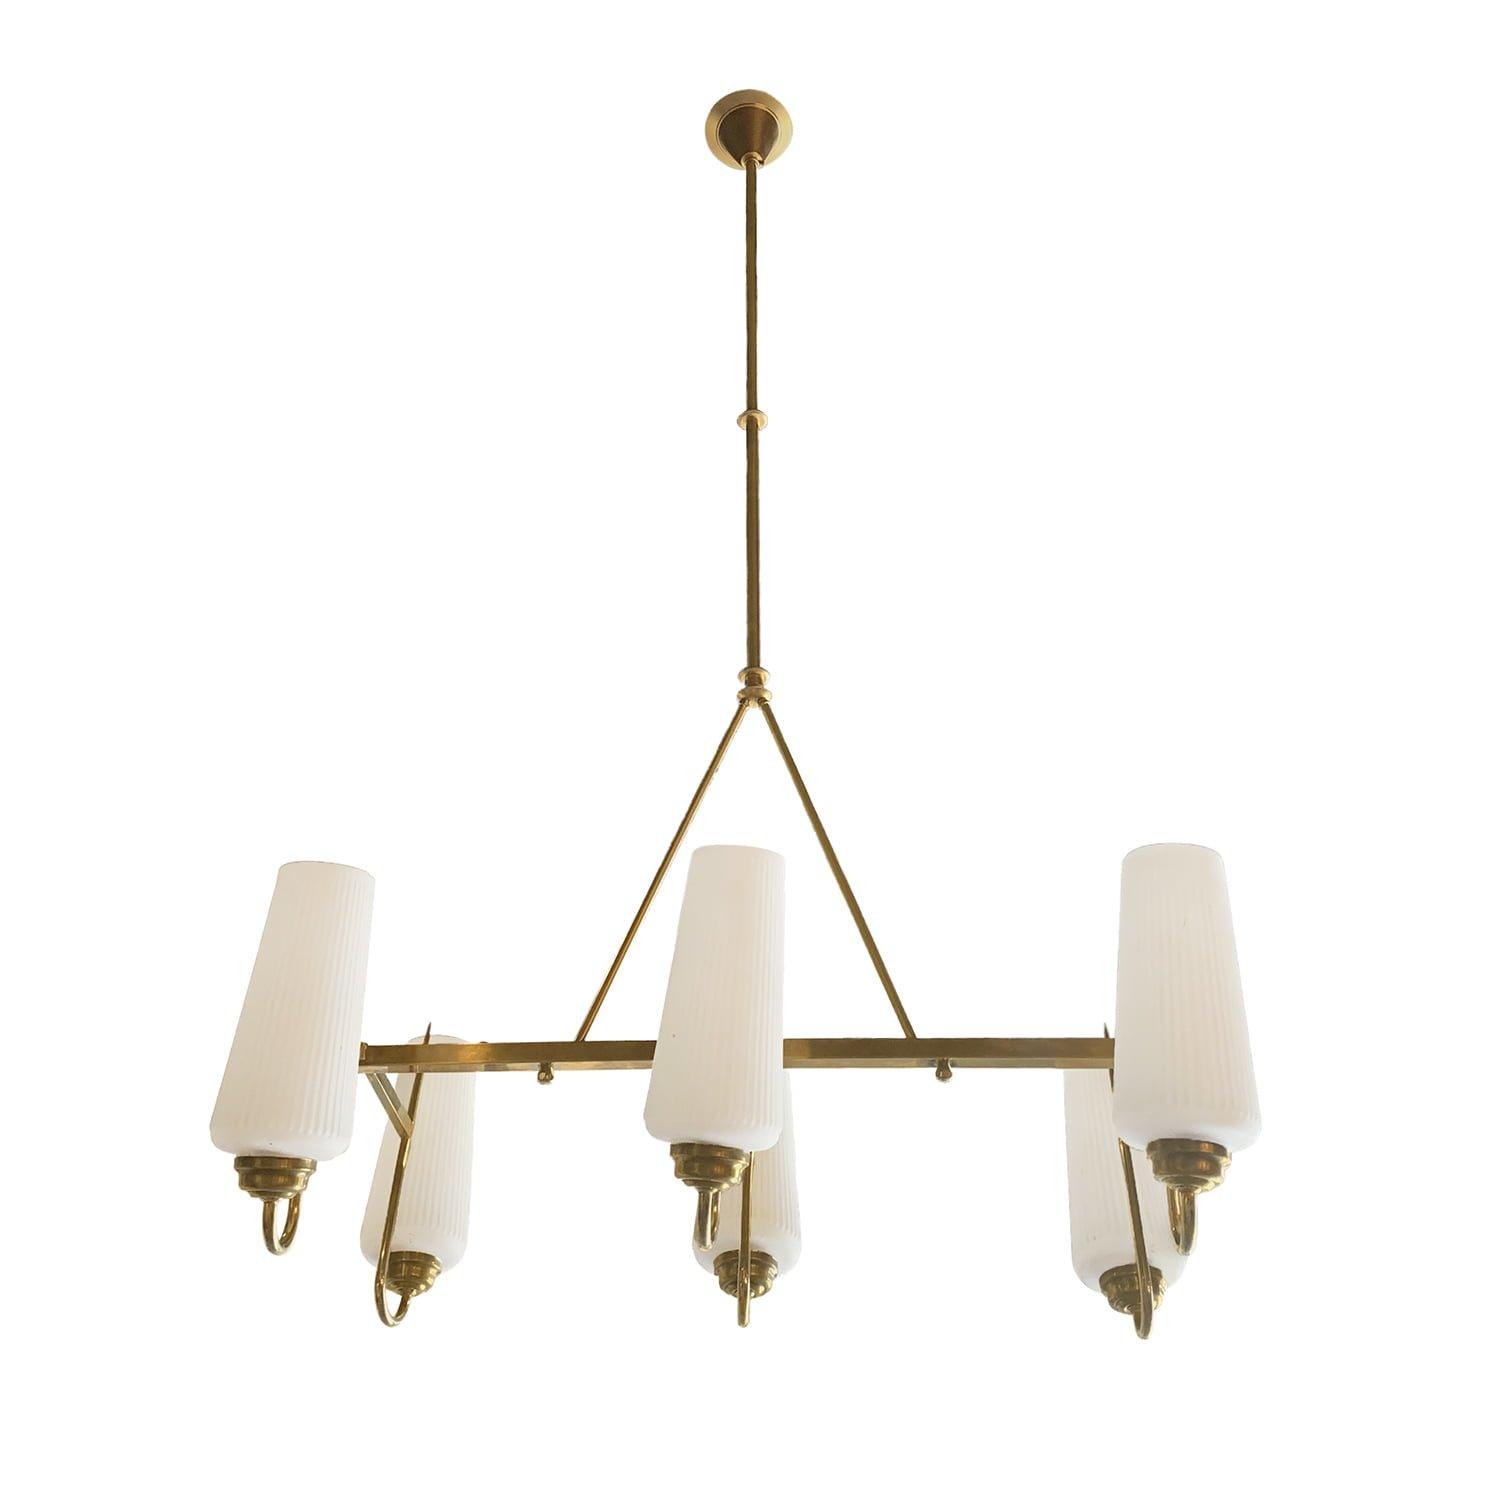 20th Century Italian Brass Chandelier by Stilnovo